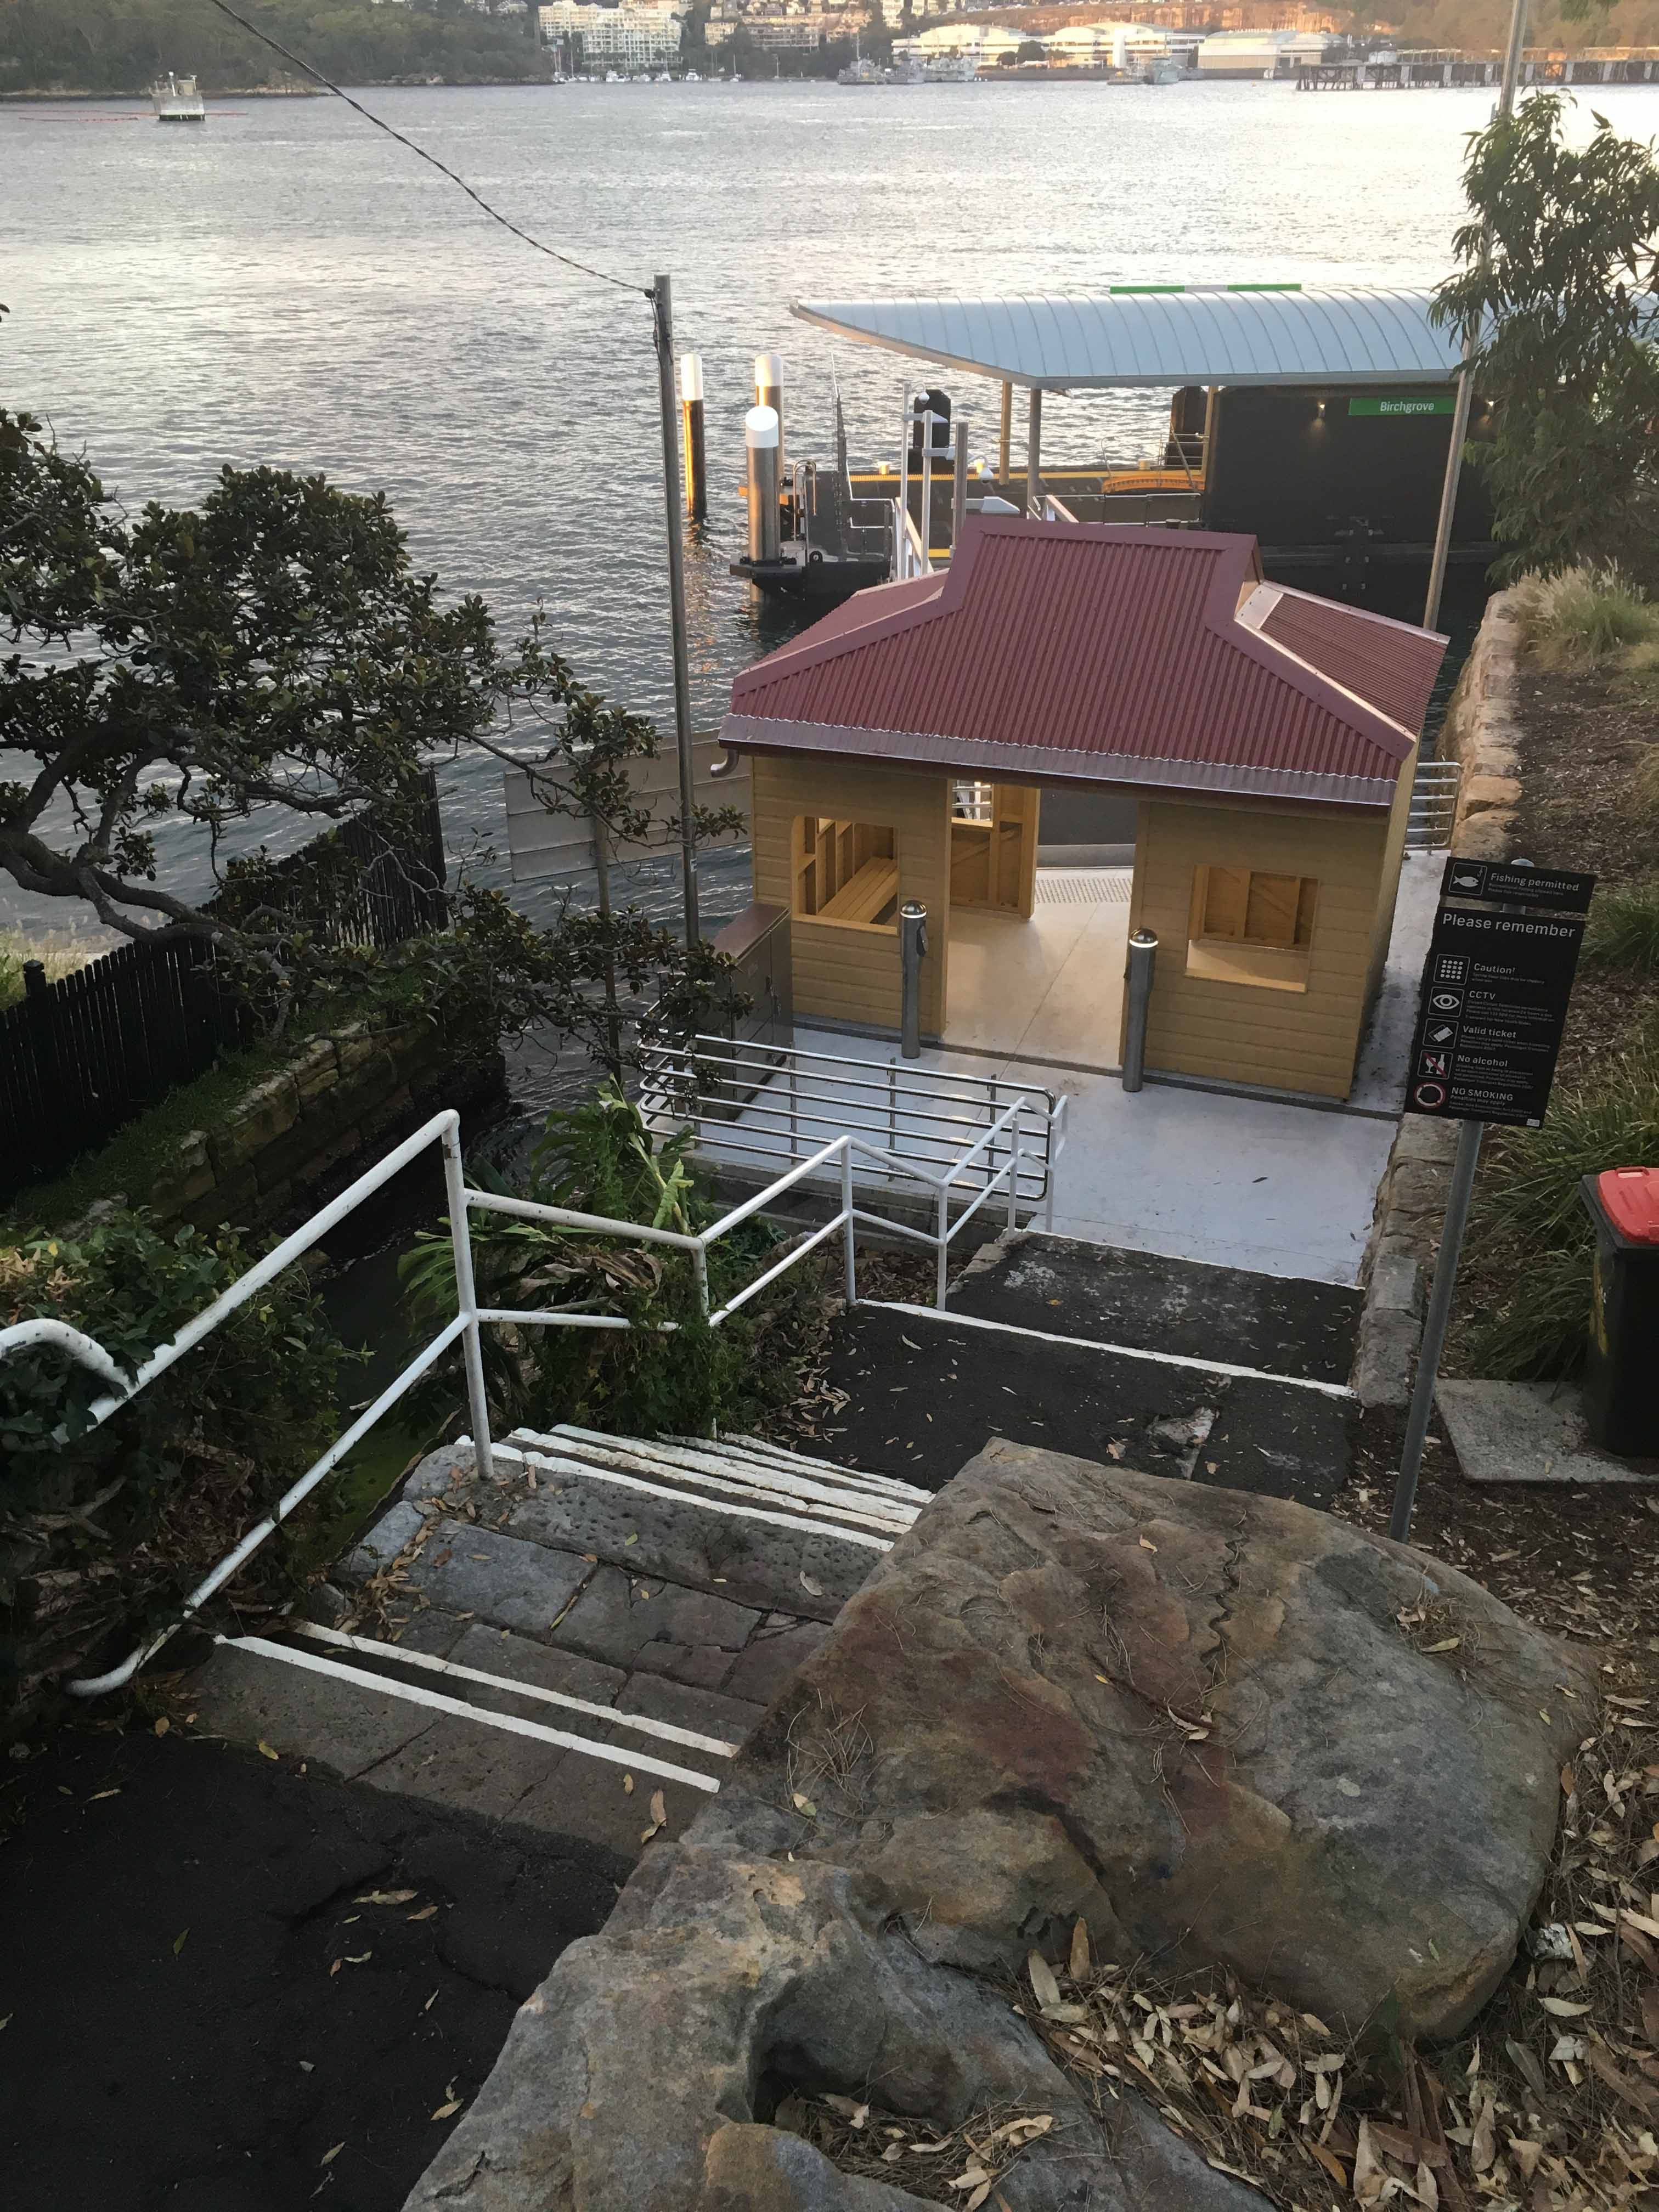 Disability ramp too ugly for Council